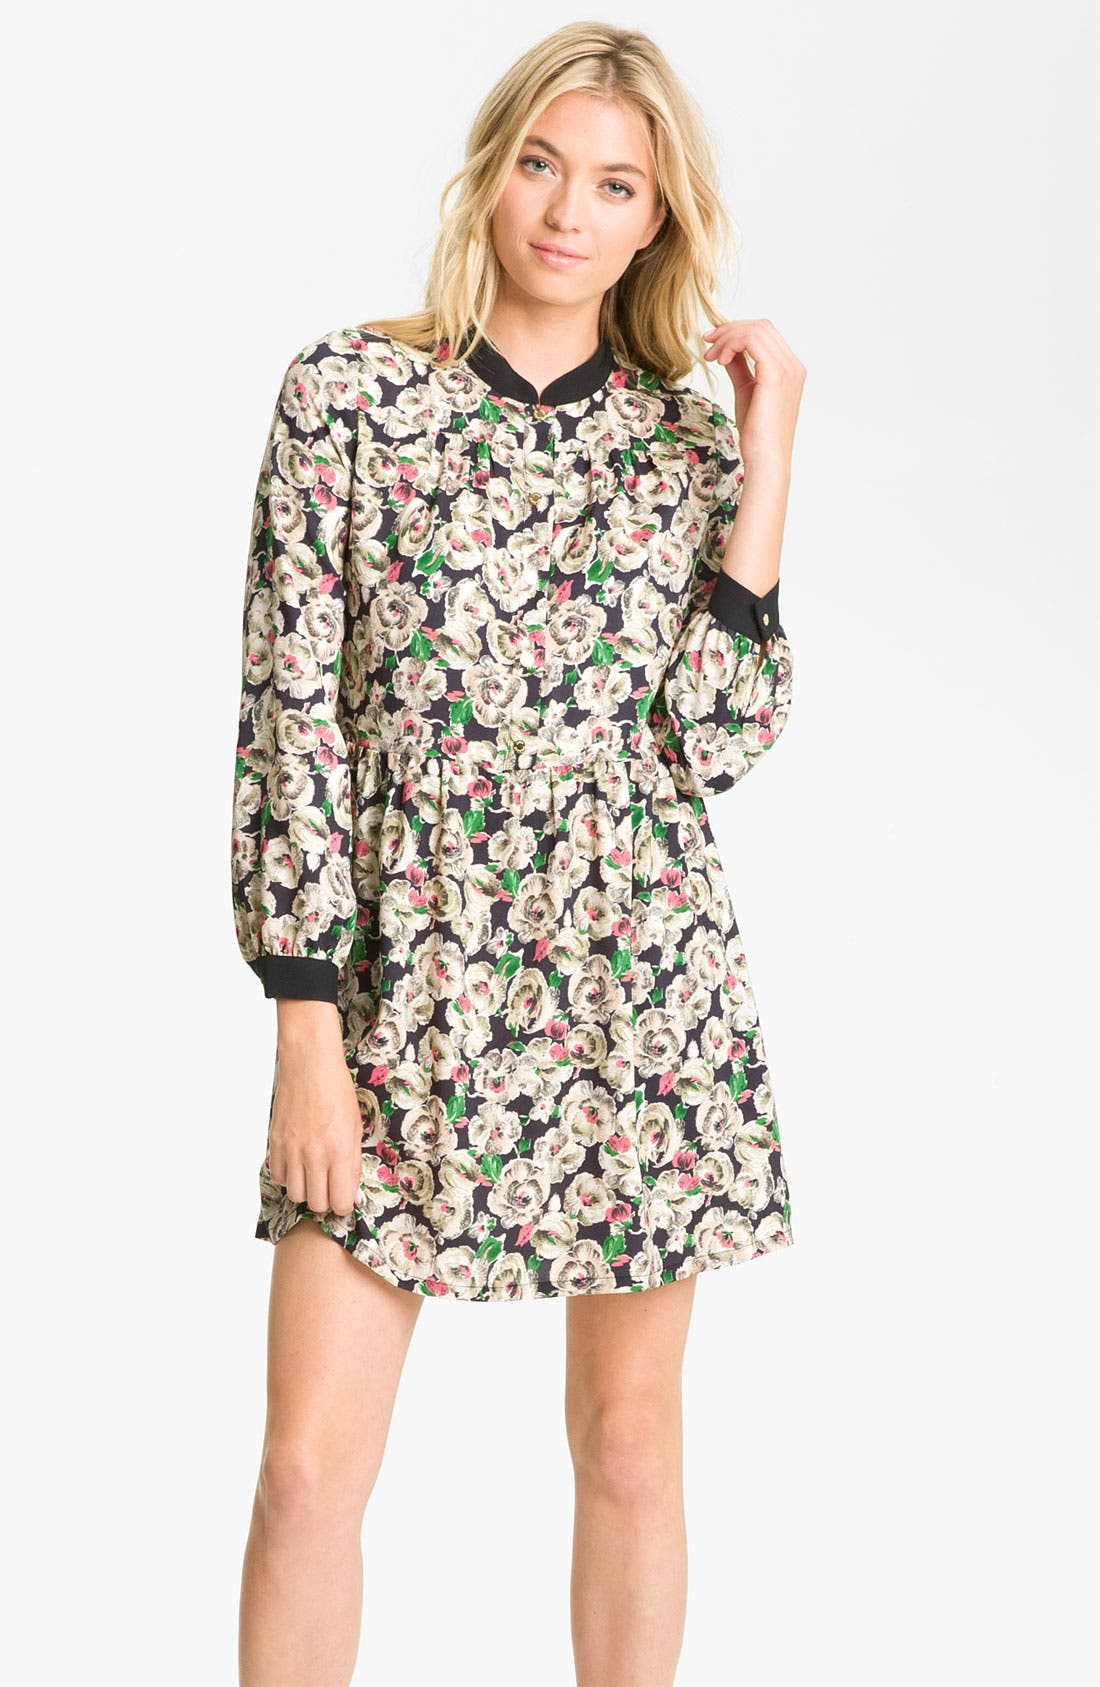 Alternate Image 1 Selected - Juicy Couture Floral Print Dress